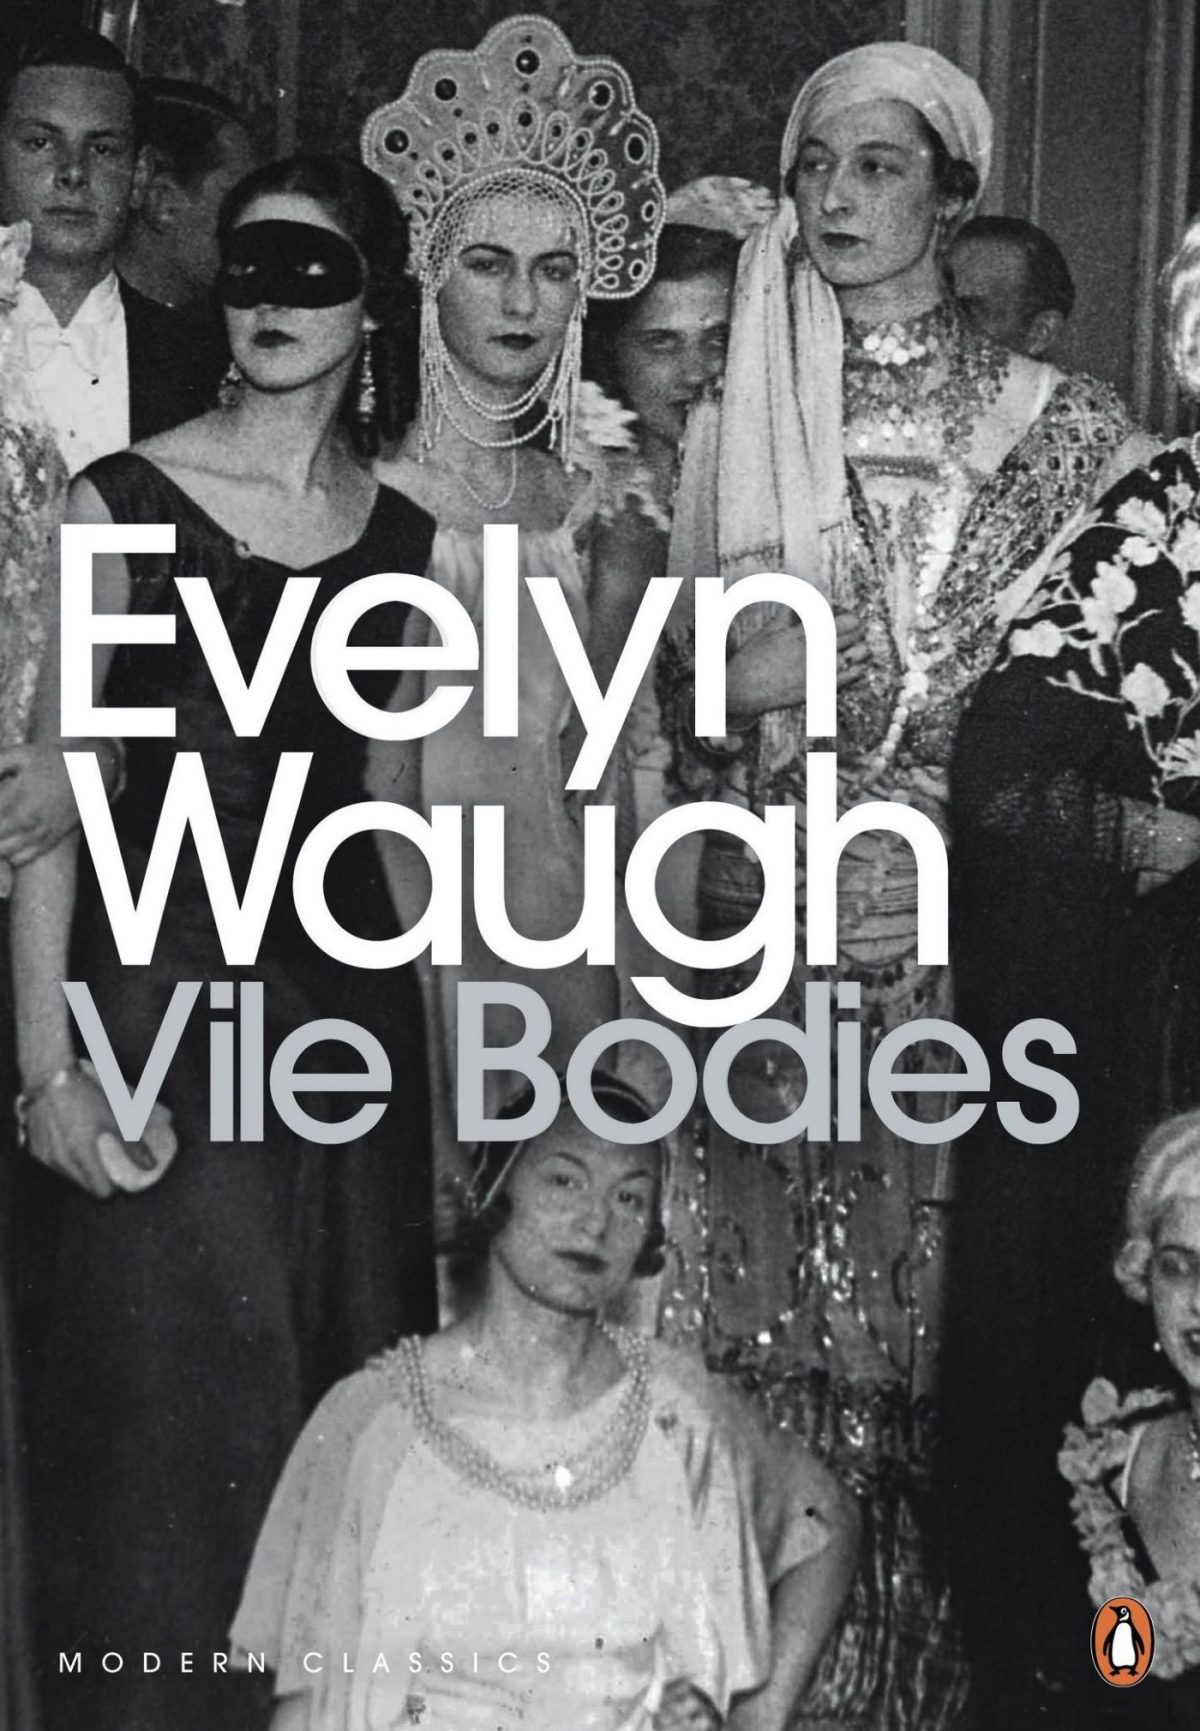 Evelyn Waugh, Vile Bodies, books, writers, Duncan McLaren